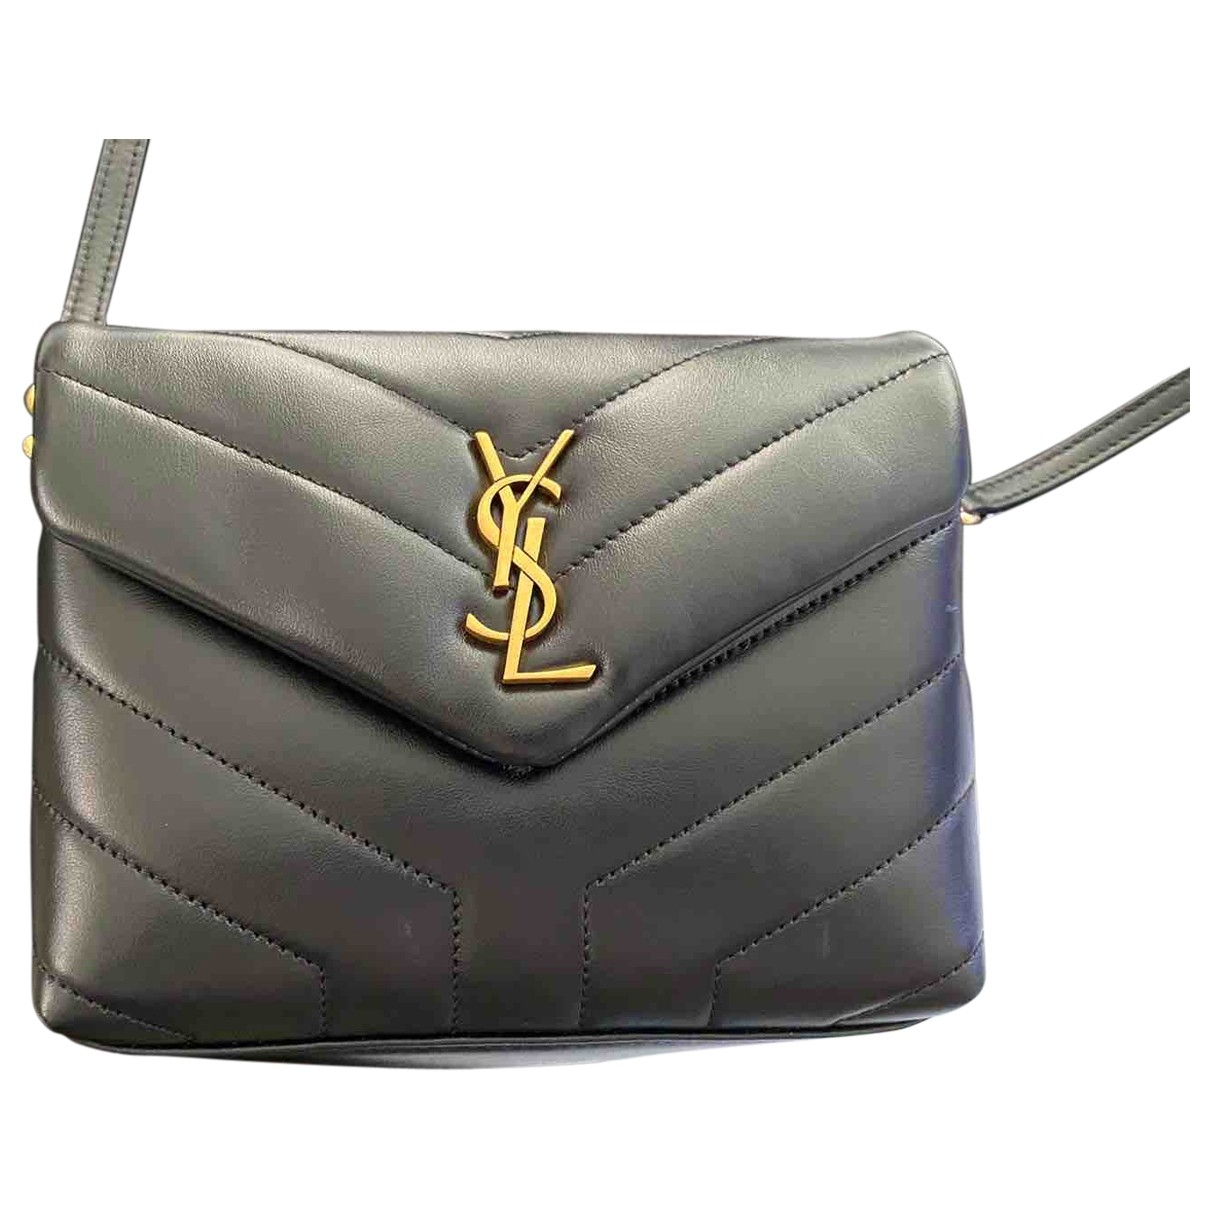 Saint Laurent Loulou Black Leather handbag for Women \N